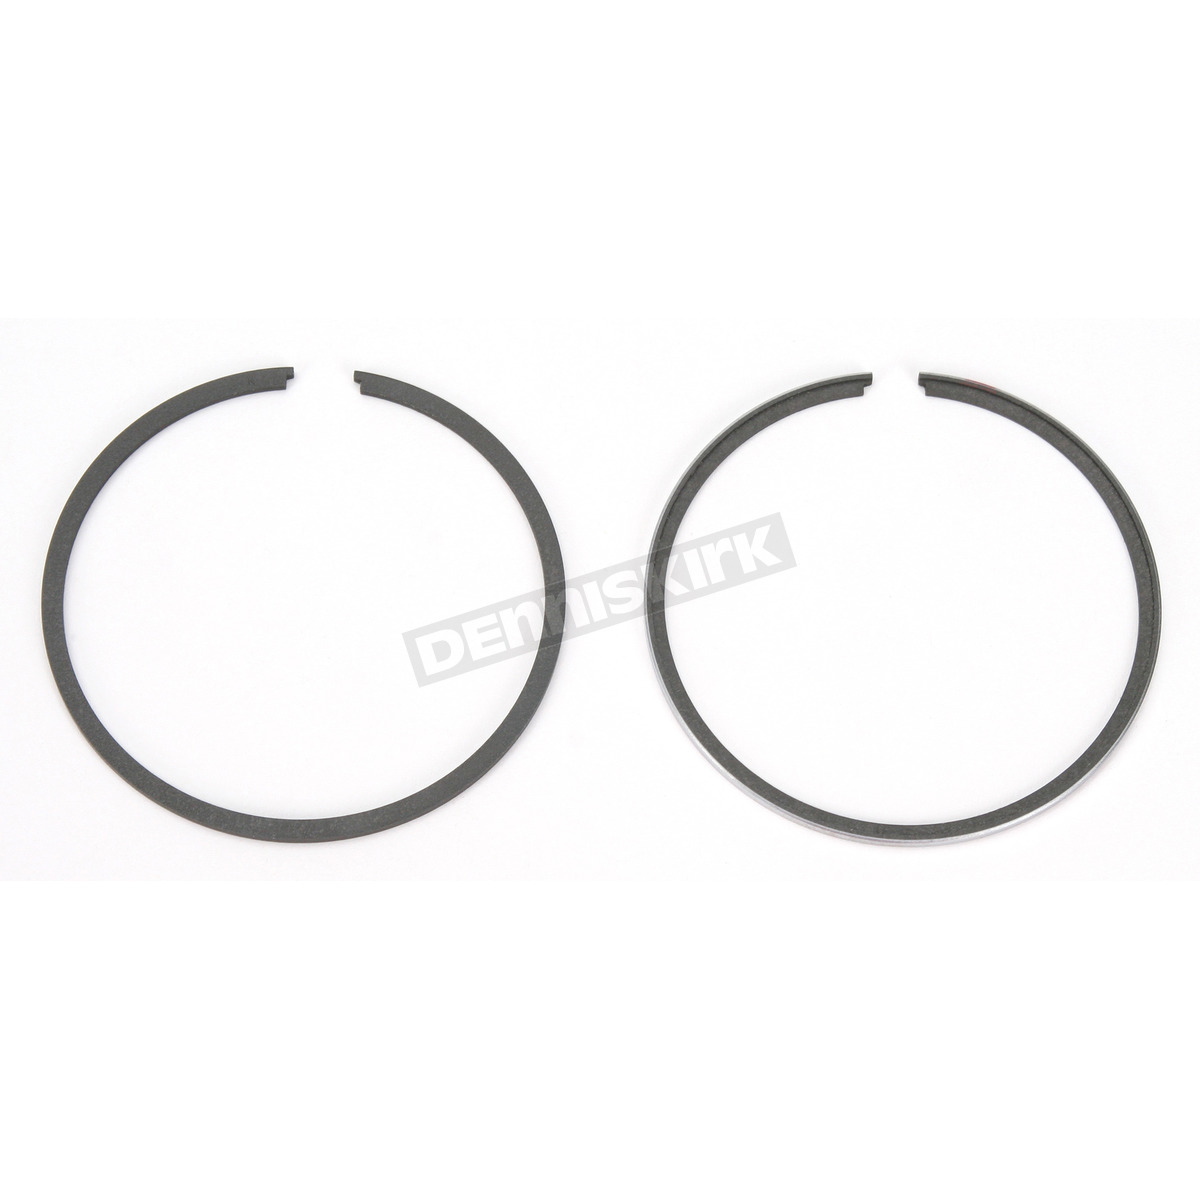 Parts Unlimited R09-752 Ring Set 2.657in. 67.5mm